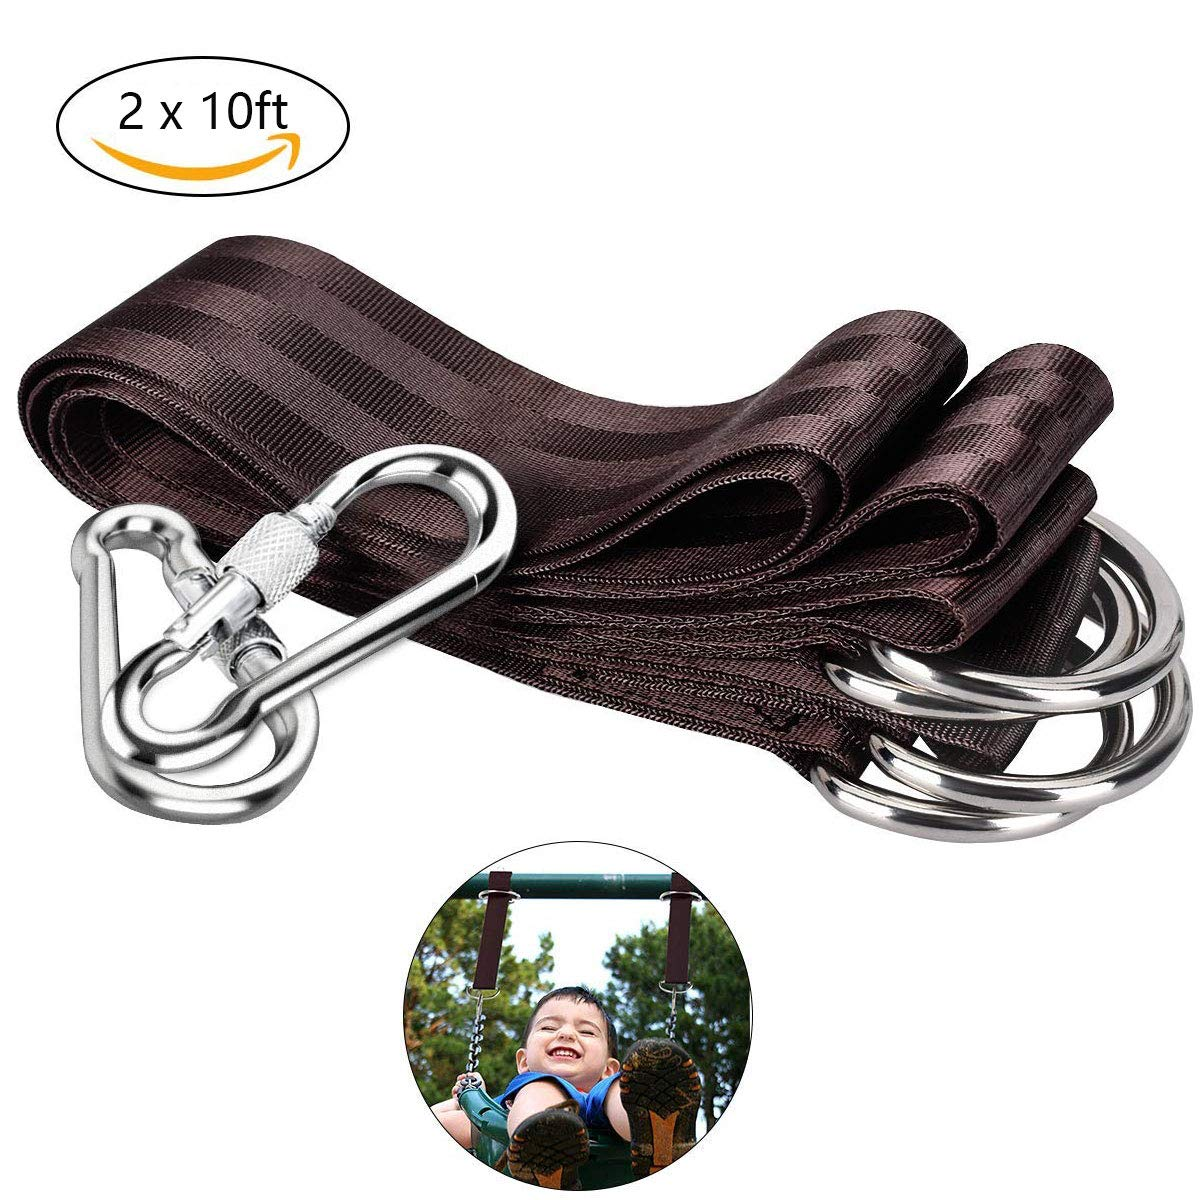 Tree swing harness pendant set can hold 2200 lbs - 2 x 10 ft long outdoor swing sling and buckle carabiner hooks, easy and quick installation 100% weather / waterproof perfect for tree swings and hamm